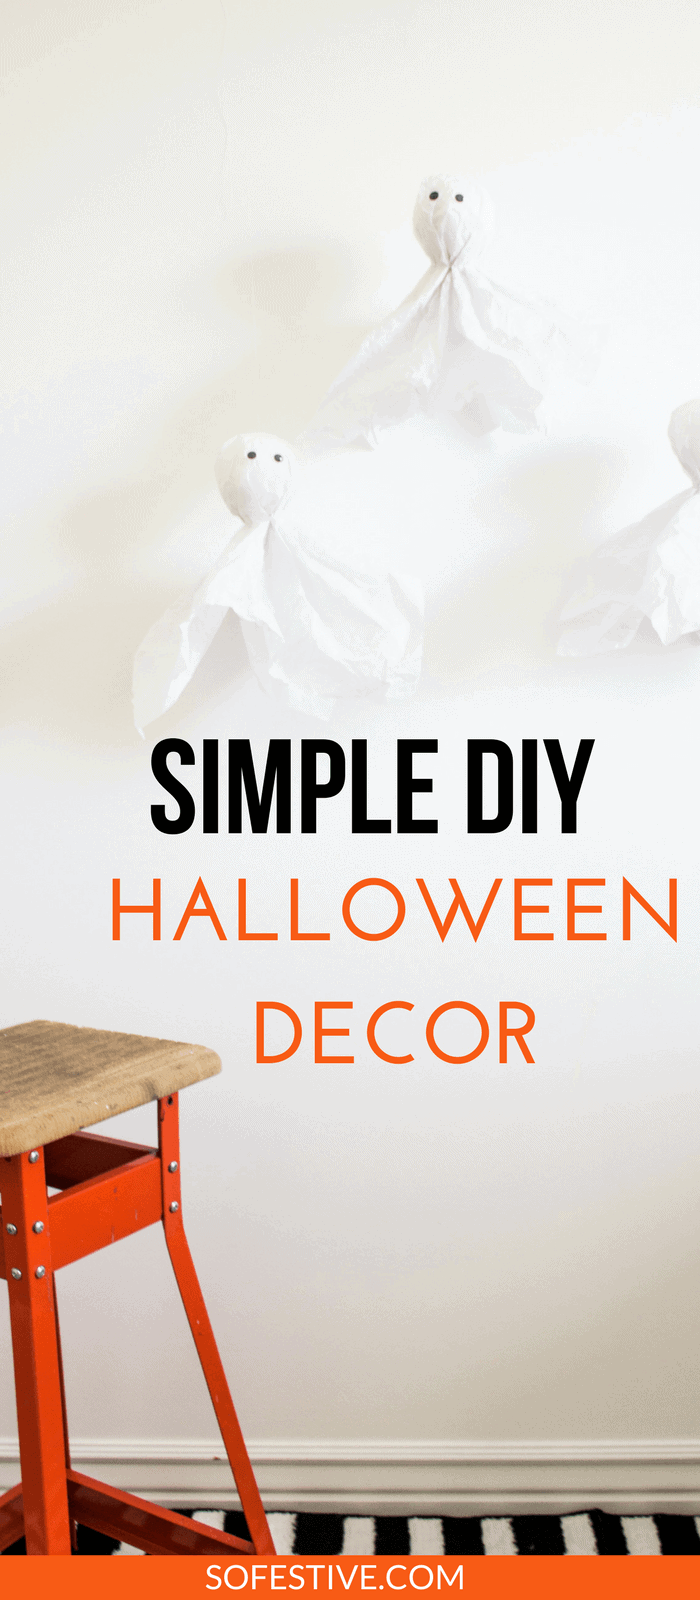 Simple DIY Halloween Decorations- Halloween Party Ideas- Cheap Halloween Decor Ideas